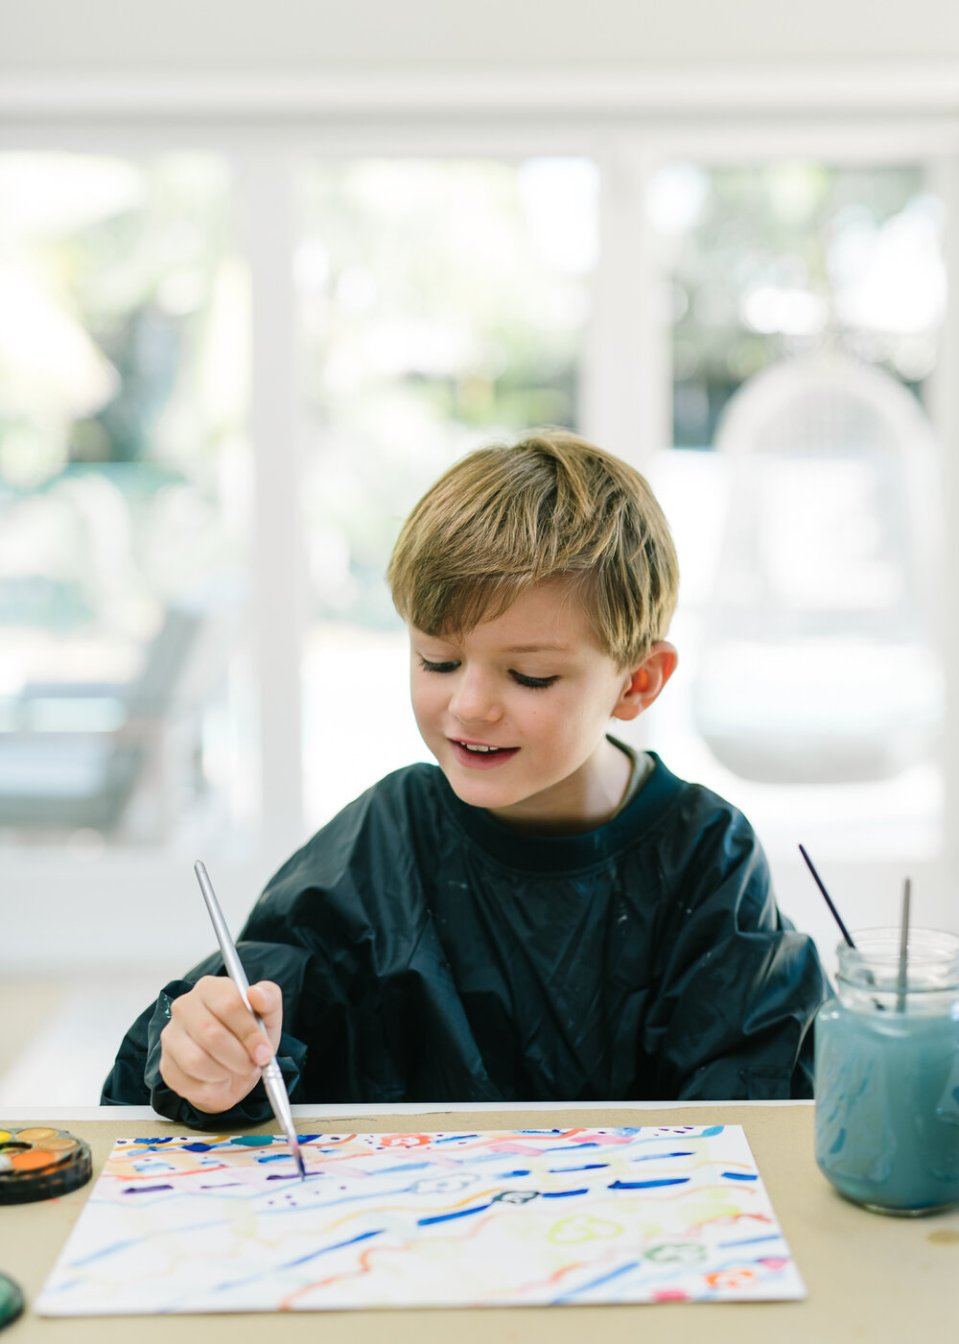 child-painting-auckland-photographer.jpg